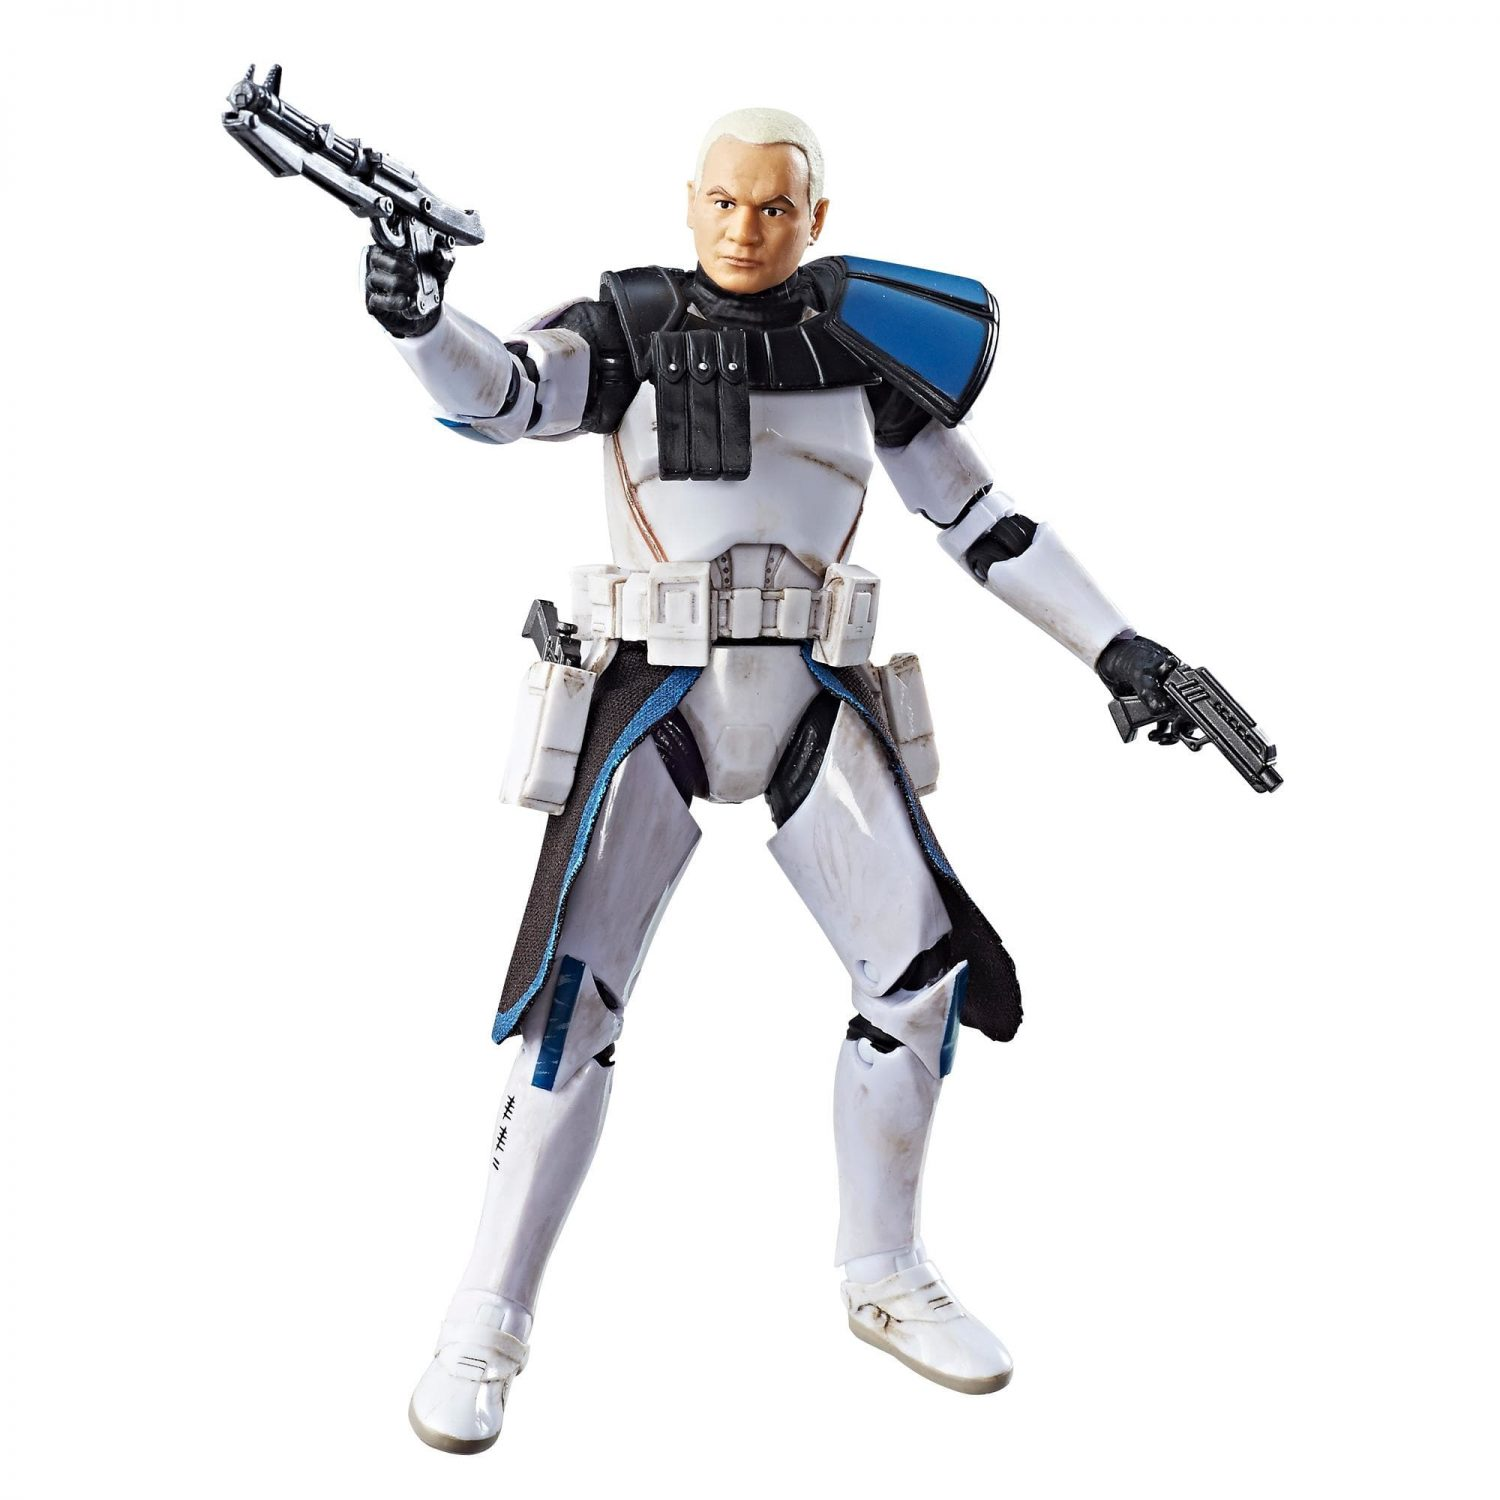 HasCon 2017 Exclusive Star Wars The Black Series 6″ Captain Rex Figure Gets A Huge Mark Up On eBay